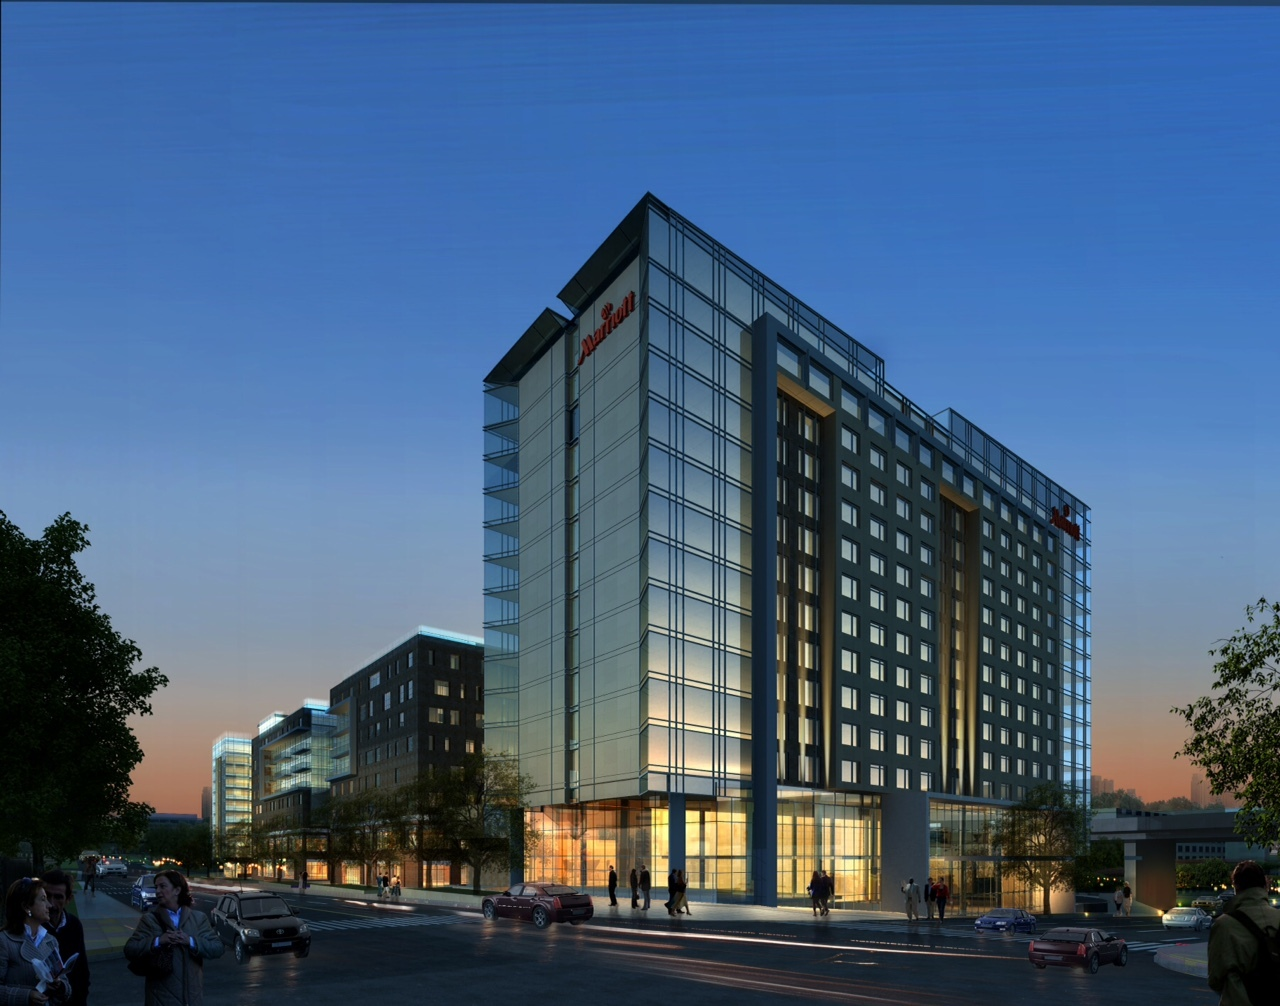 Marcus Hotels Resorts To Manage New Capitol District Marriott In Omaha Neb Business Wire